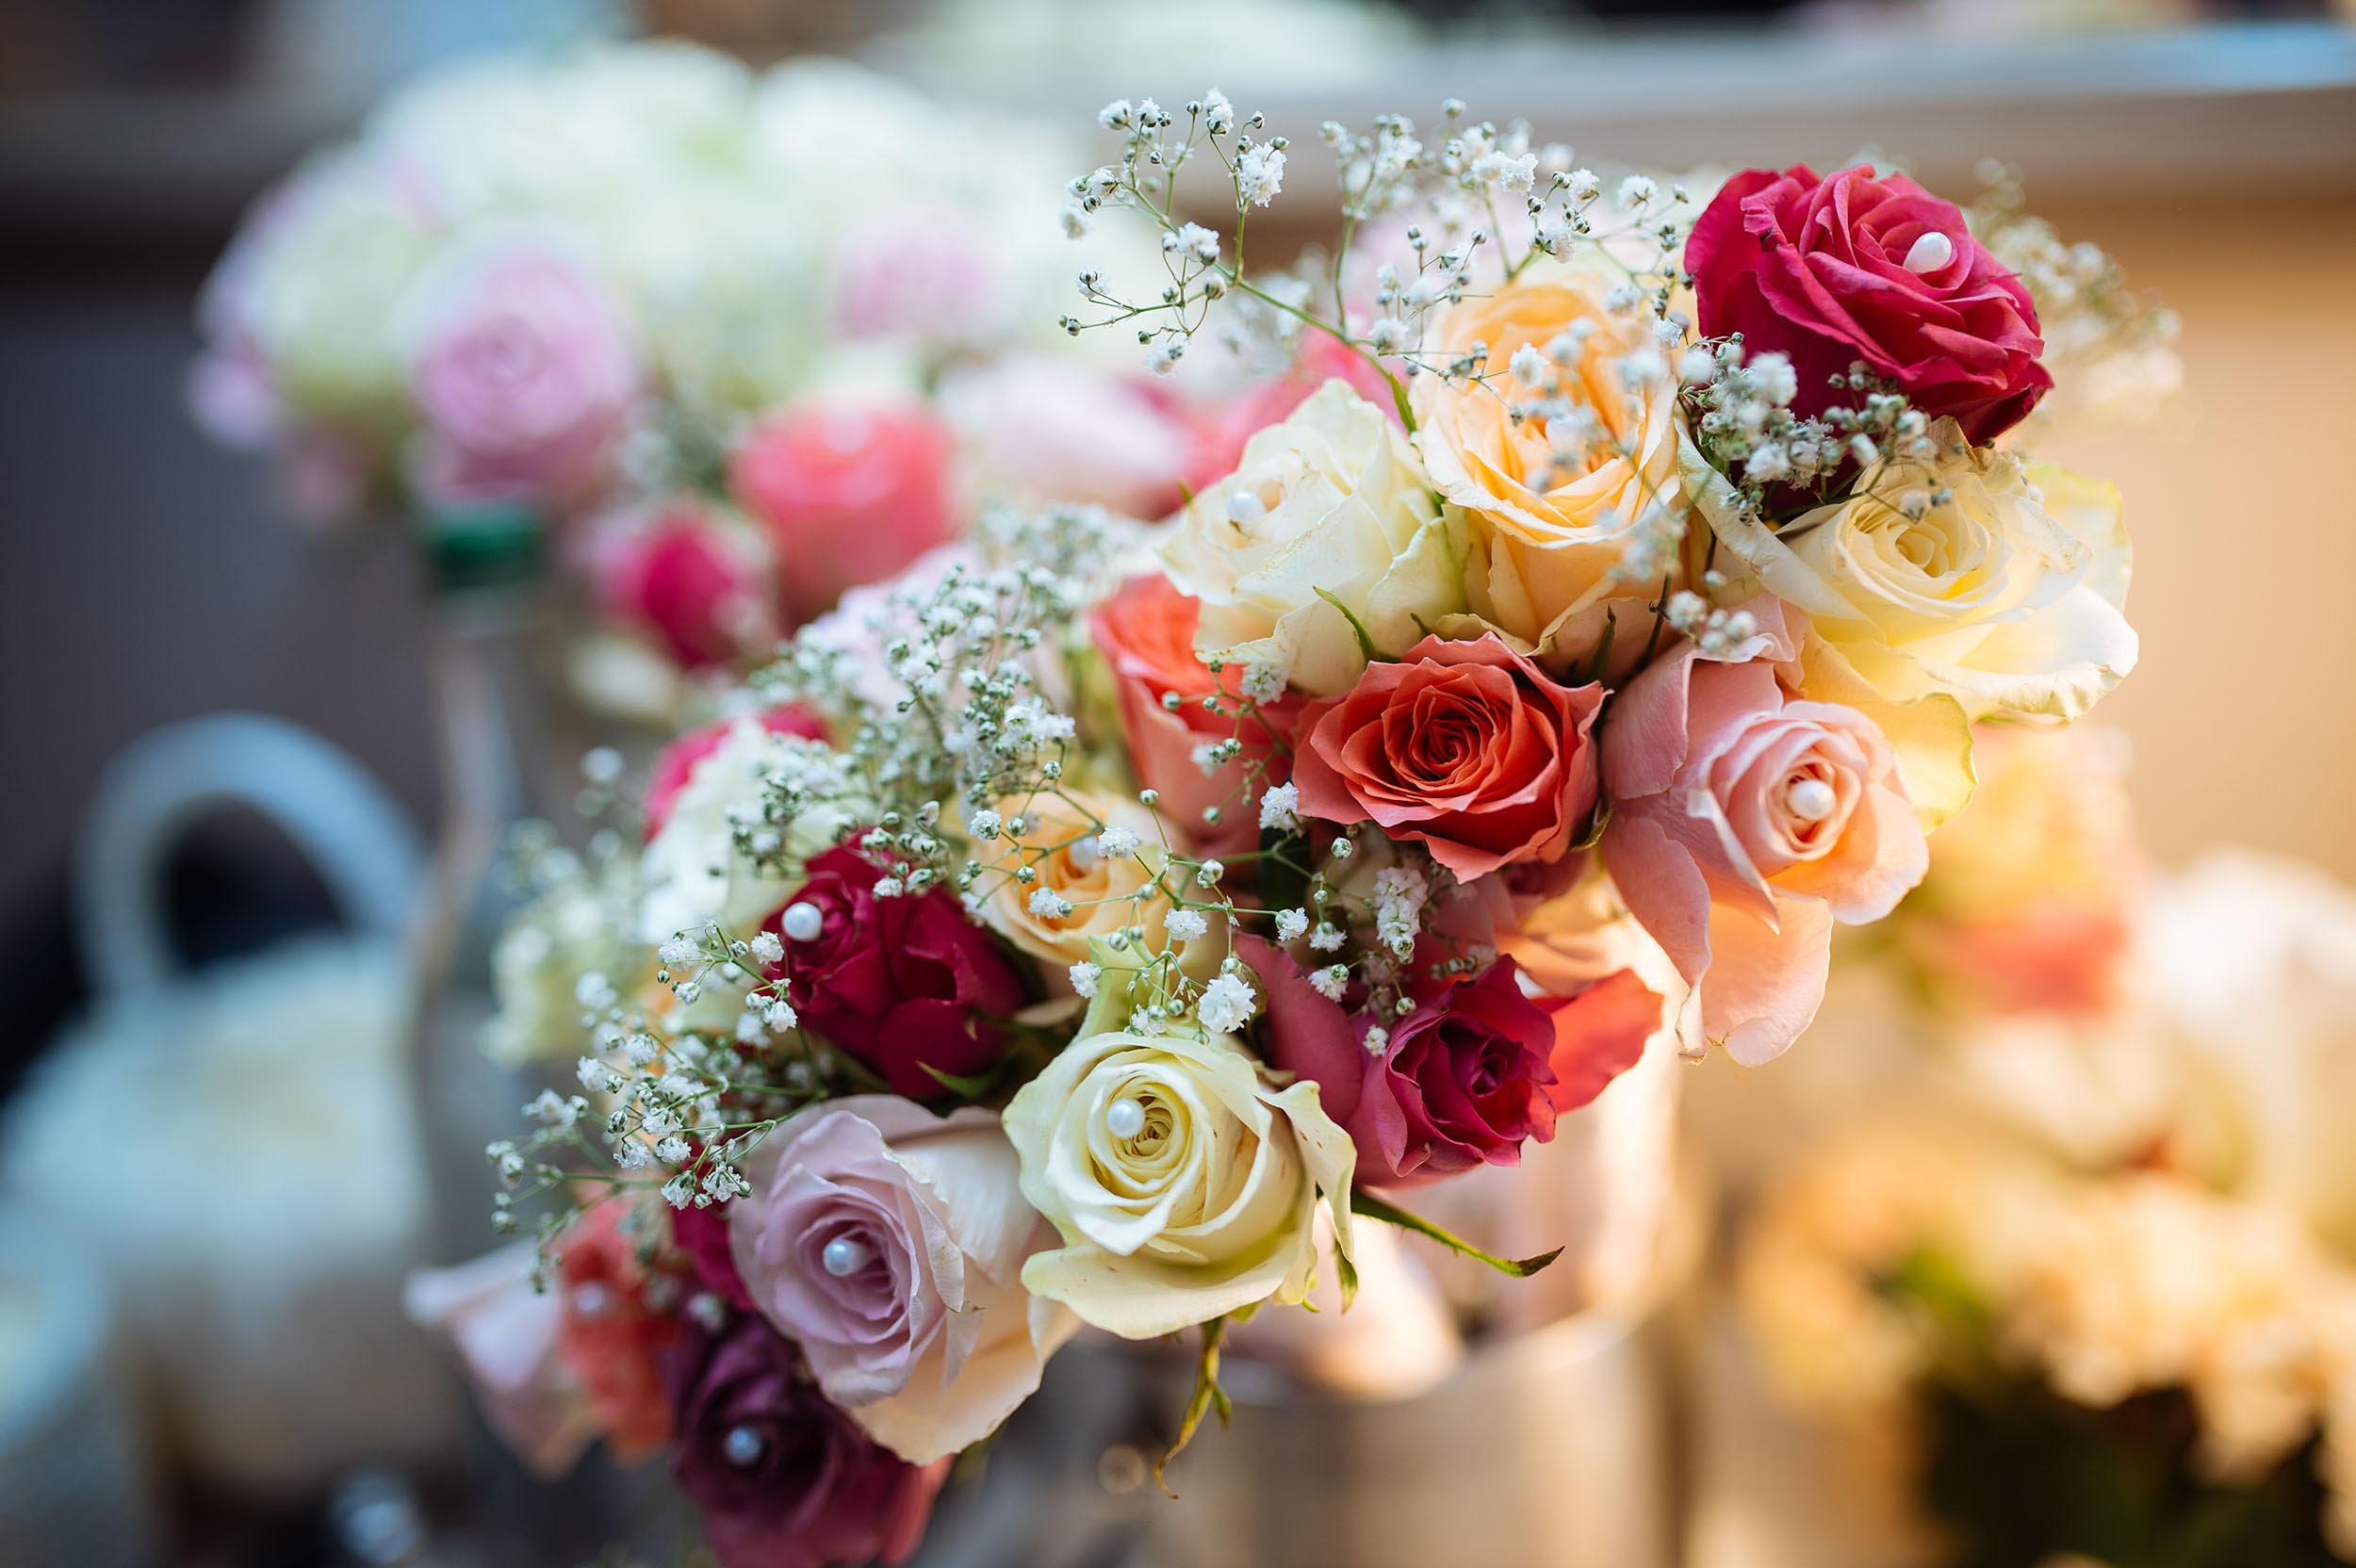 wedding-floristy-flowers-bouquet-london